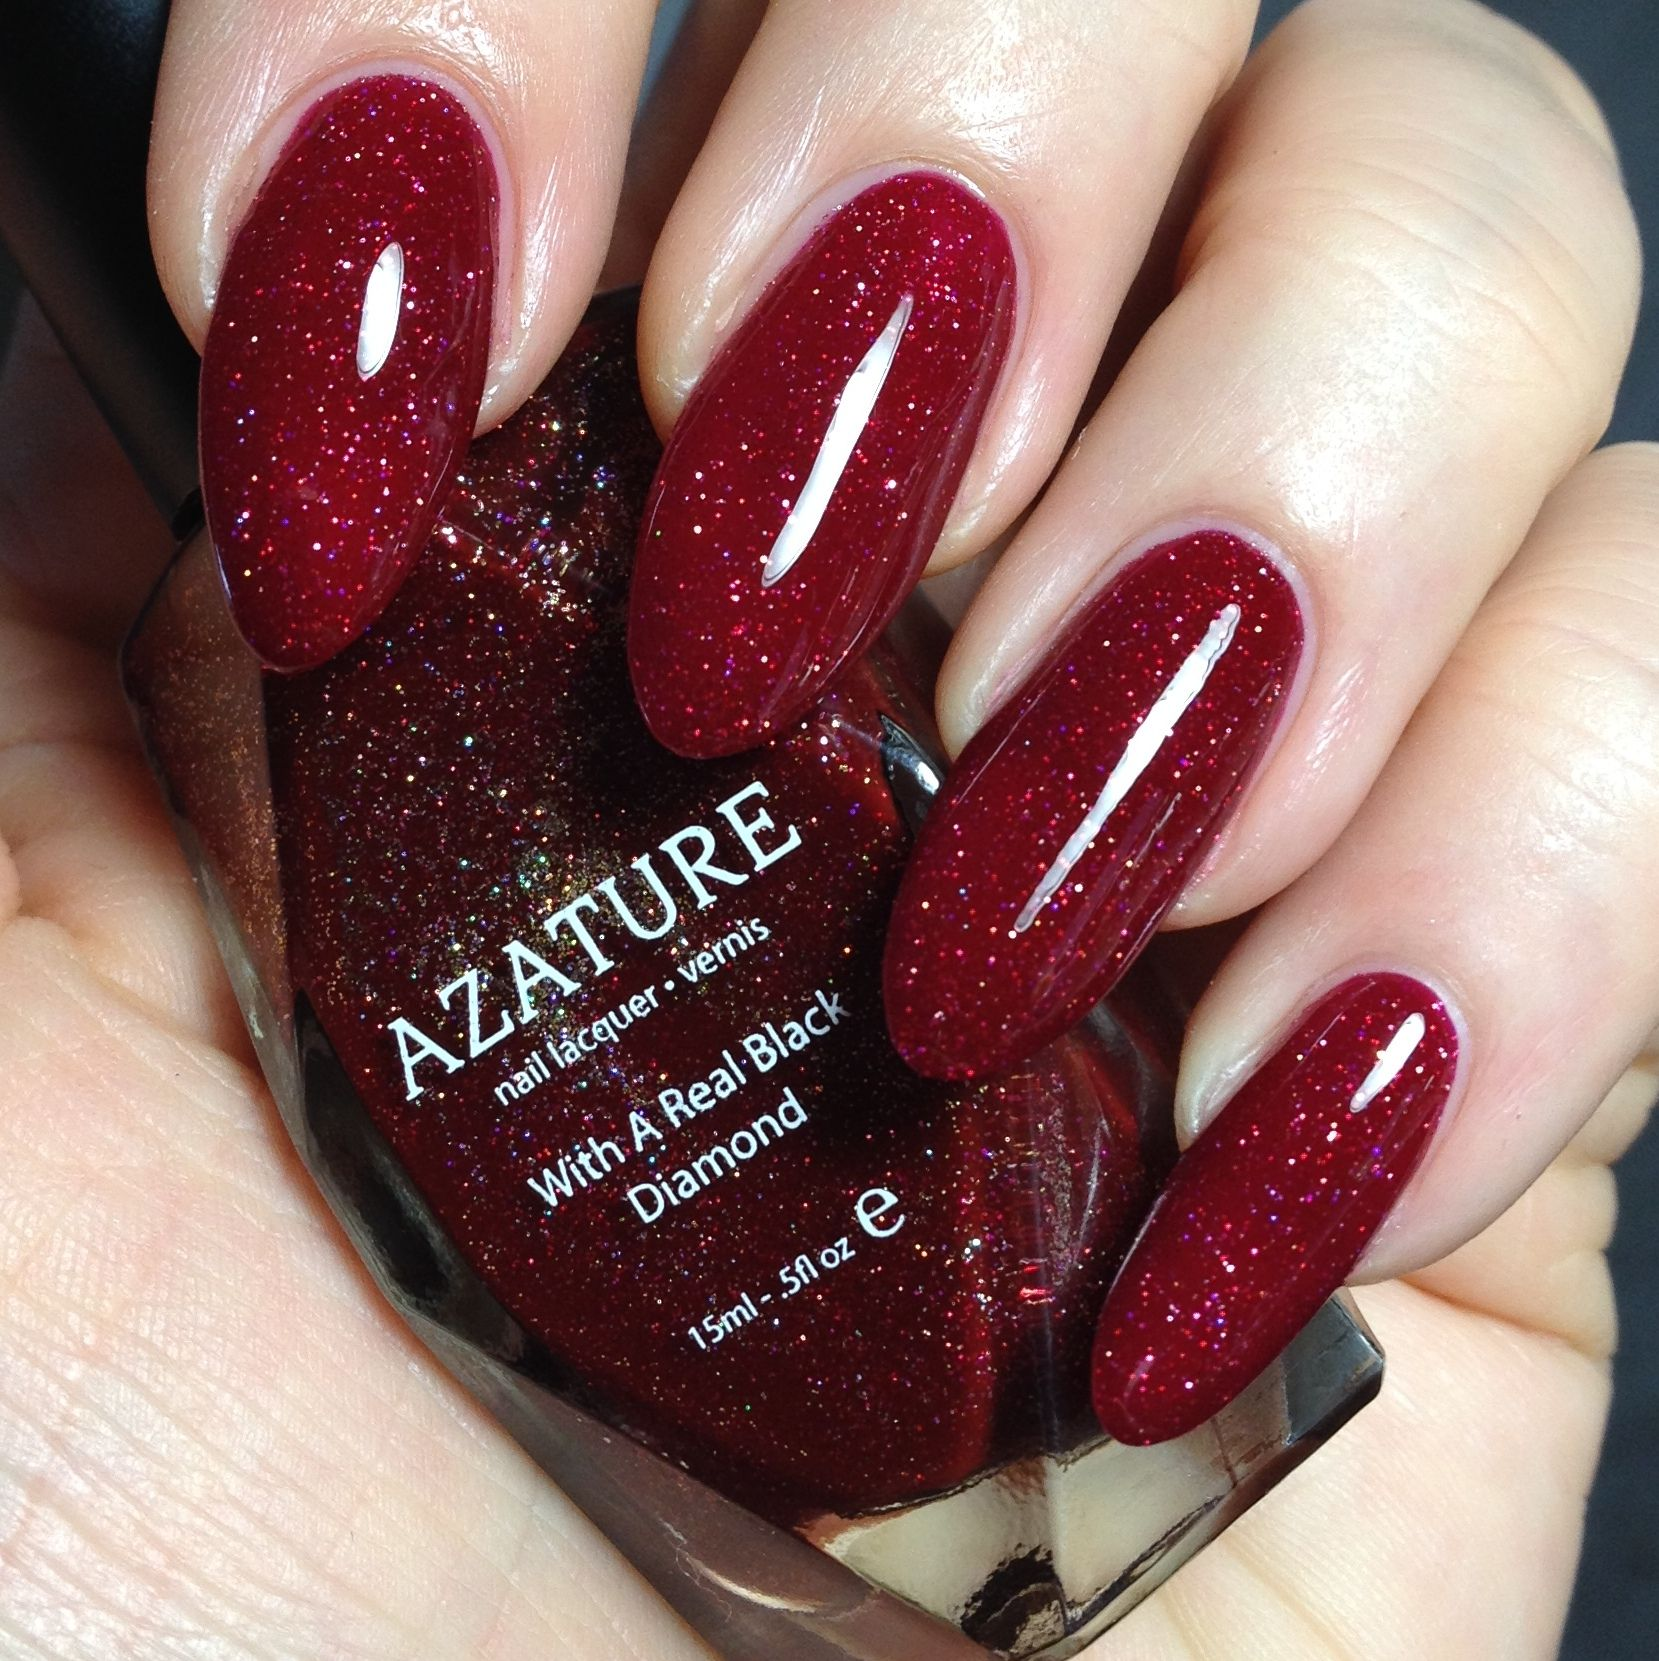 Azature Black Diamond Nail Polish In Red The Entire 40 Colour Range Available Uk Exclusively From Houseofrokoko